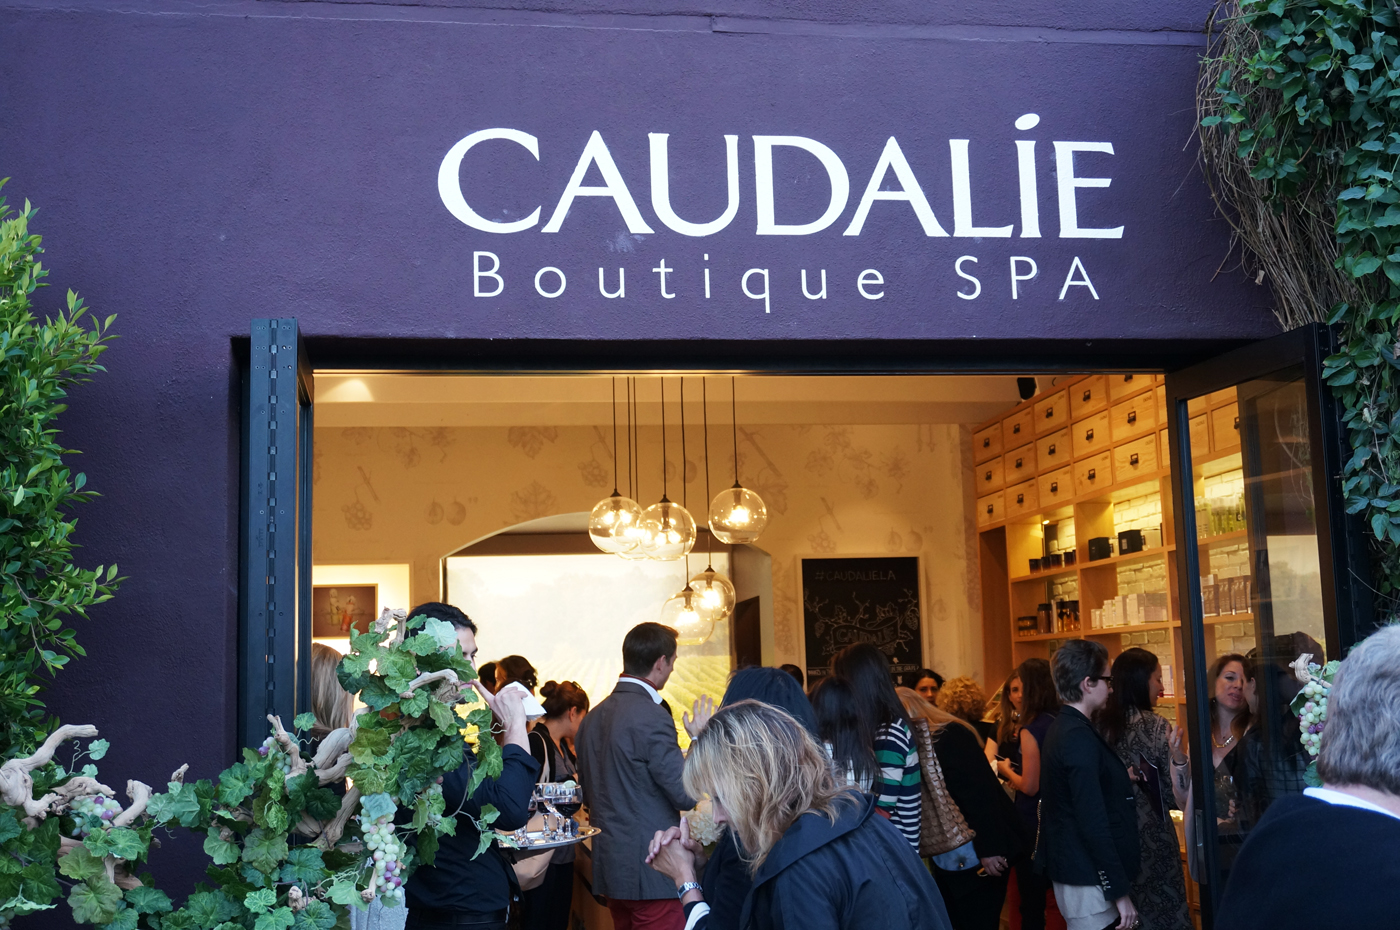 Caudalie Boutique and Spa Opens on Abbot Kinney in Venice